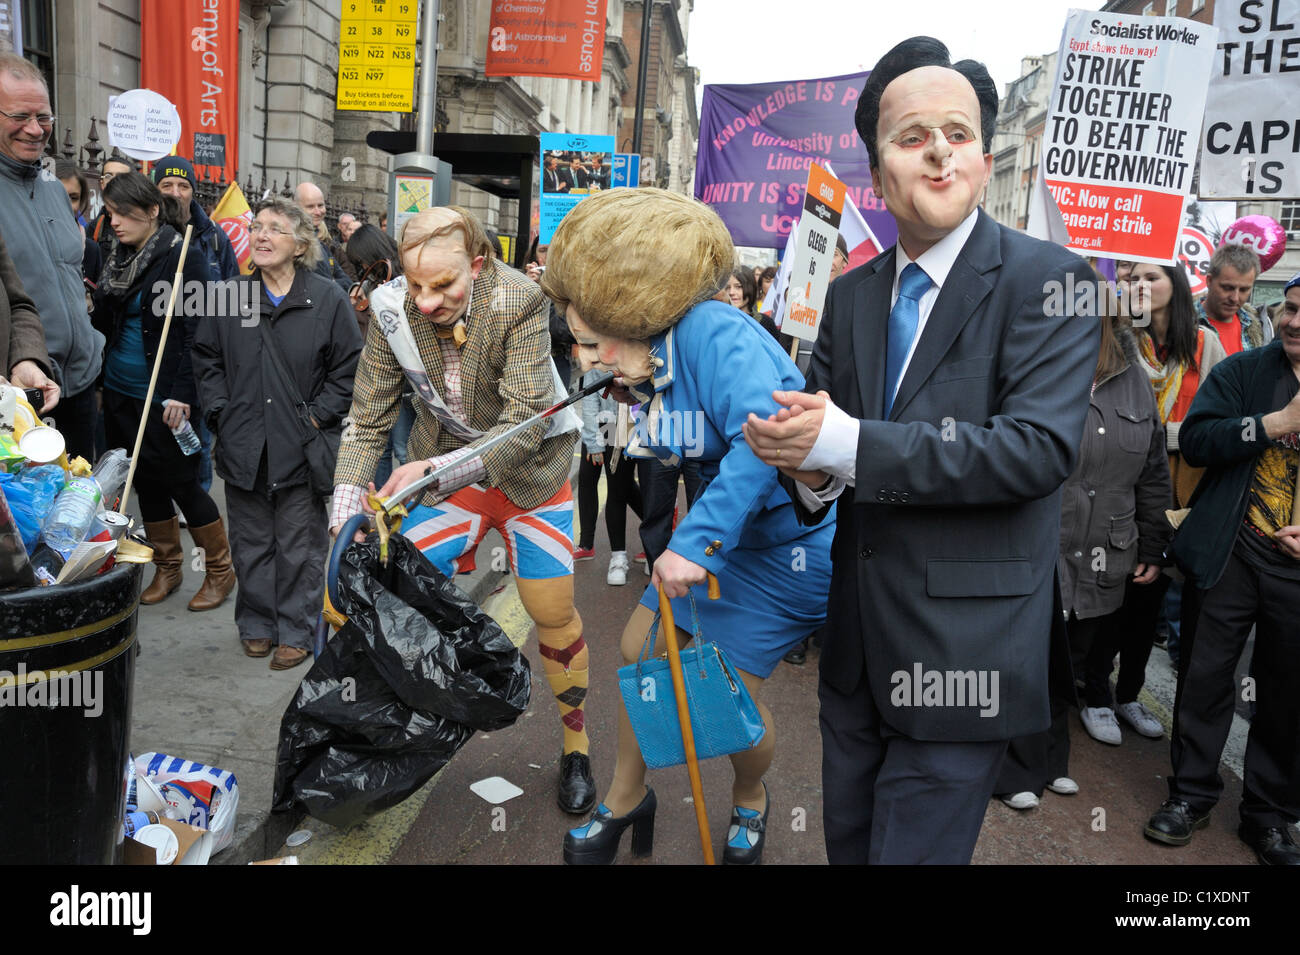 Margaret Thatcher (litter picking) and David Cameron at TUC Anti-Spending Cuts March, London 26th March 2011 - Stock Image